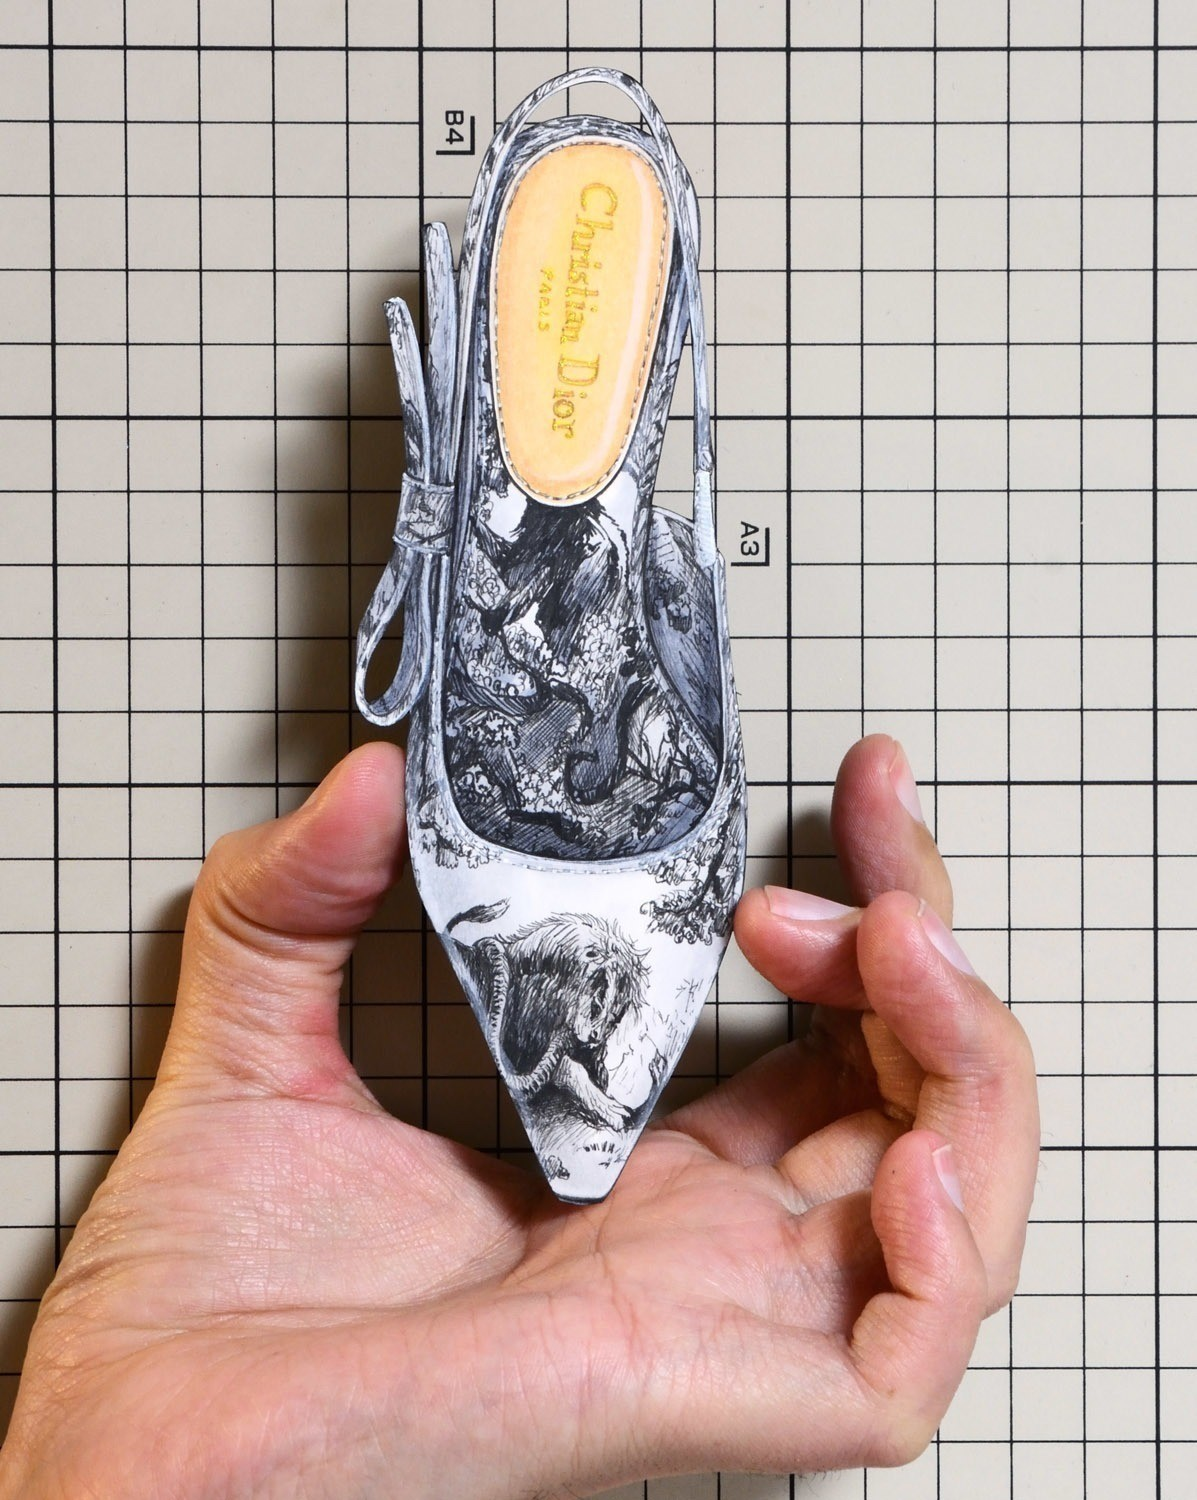 """Shoes:01202 """"Christian Dior"""" Sweet-D High-Heeled Shoe in Toile de Jouy Canvas(Cruise 2019)"""